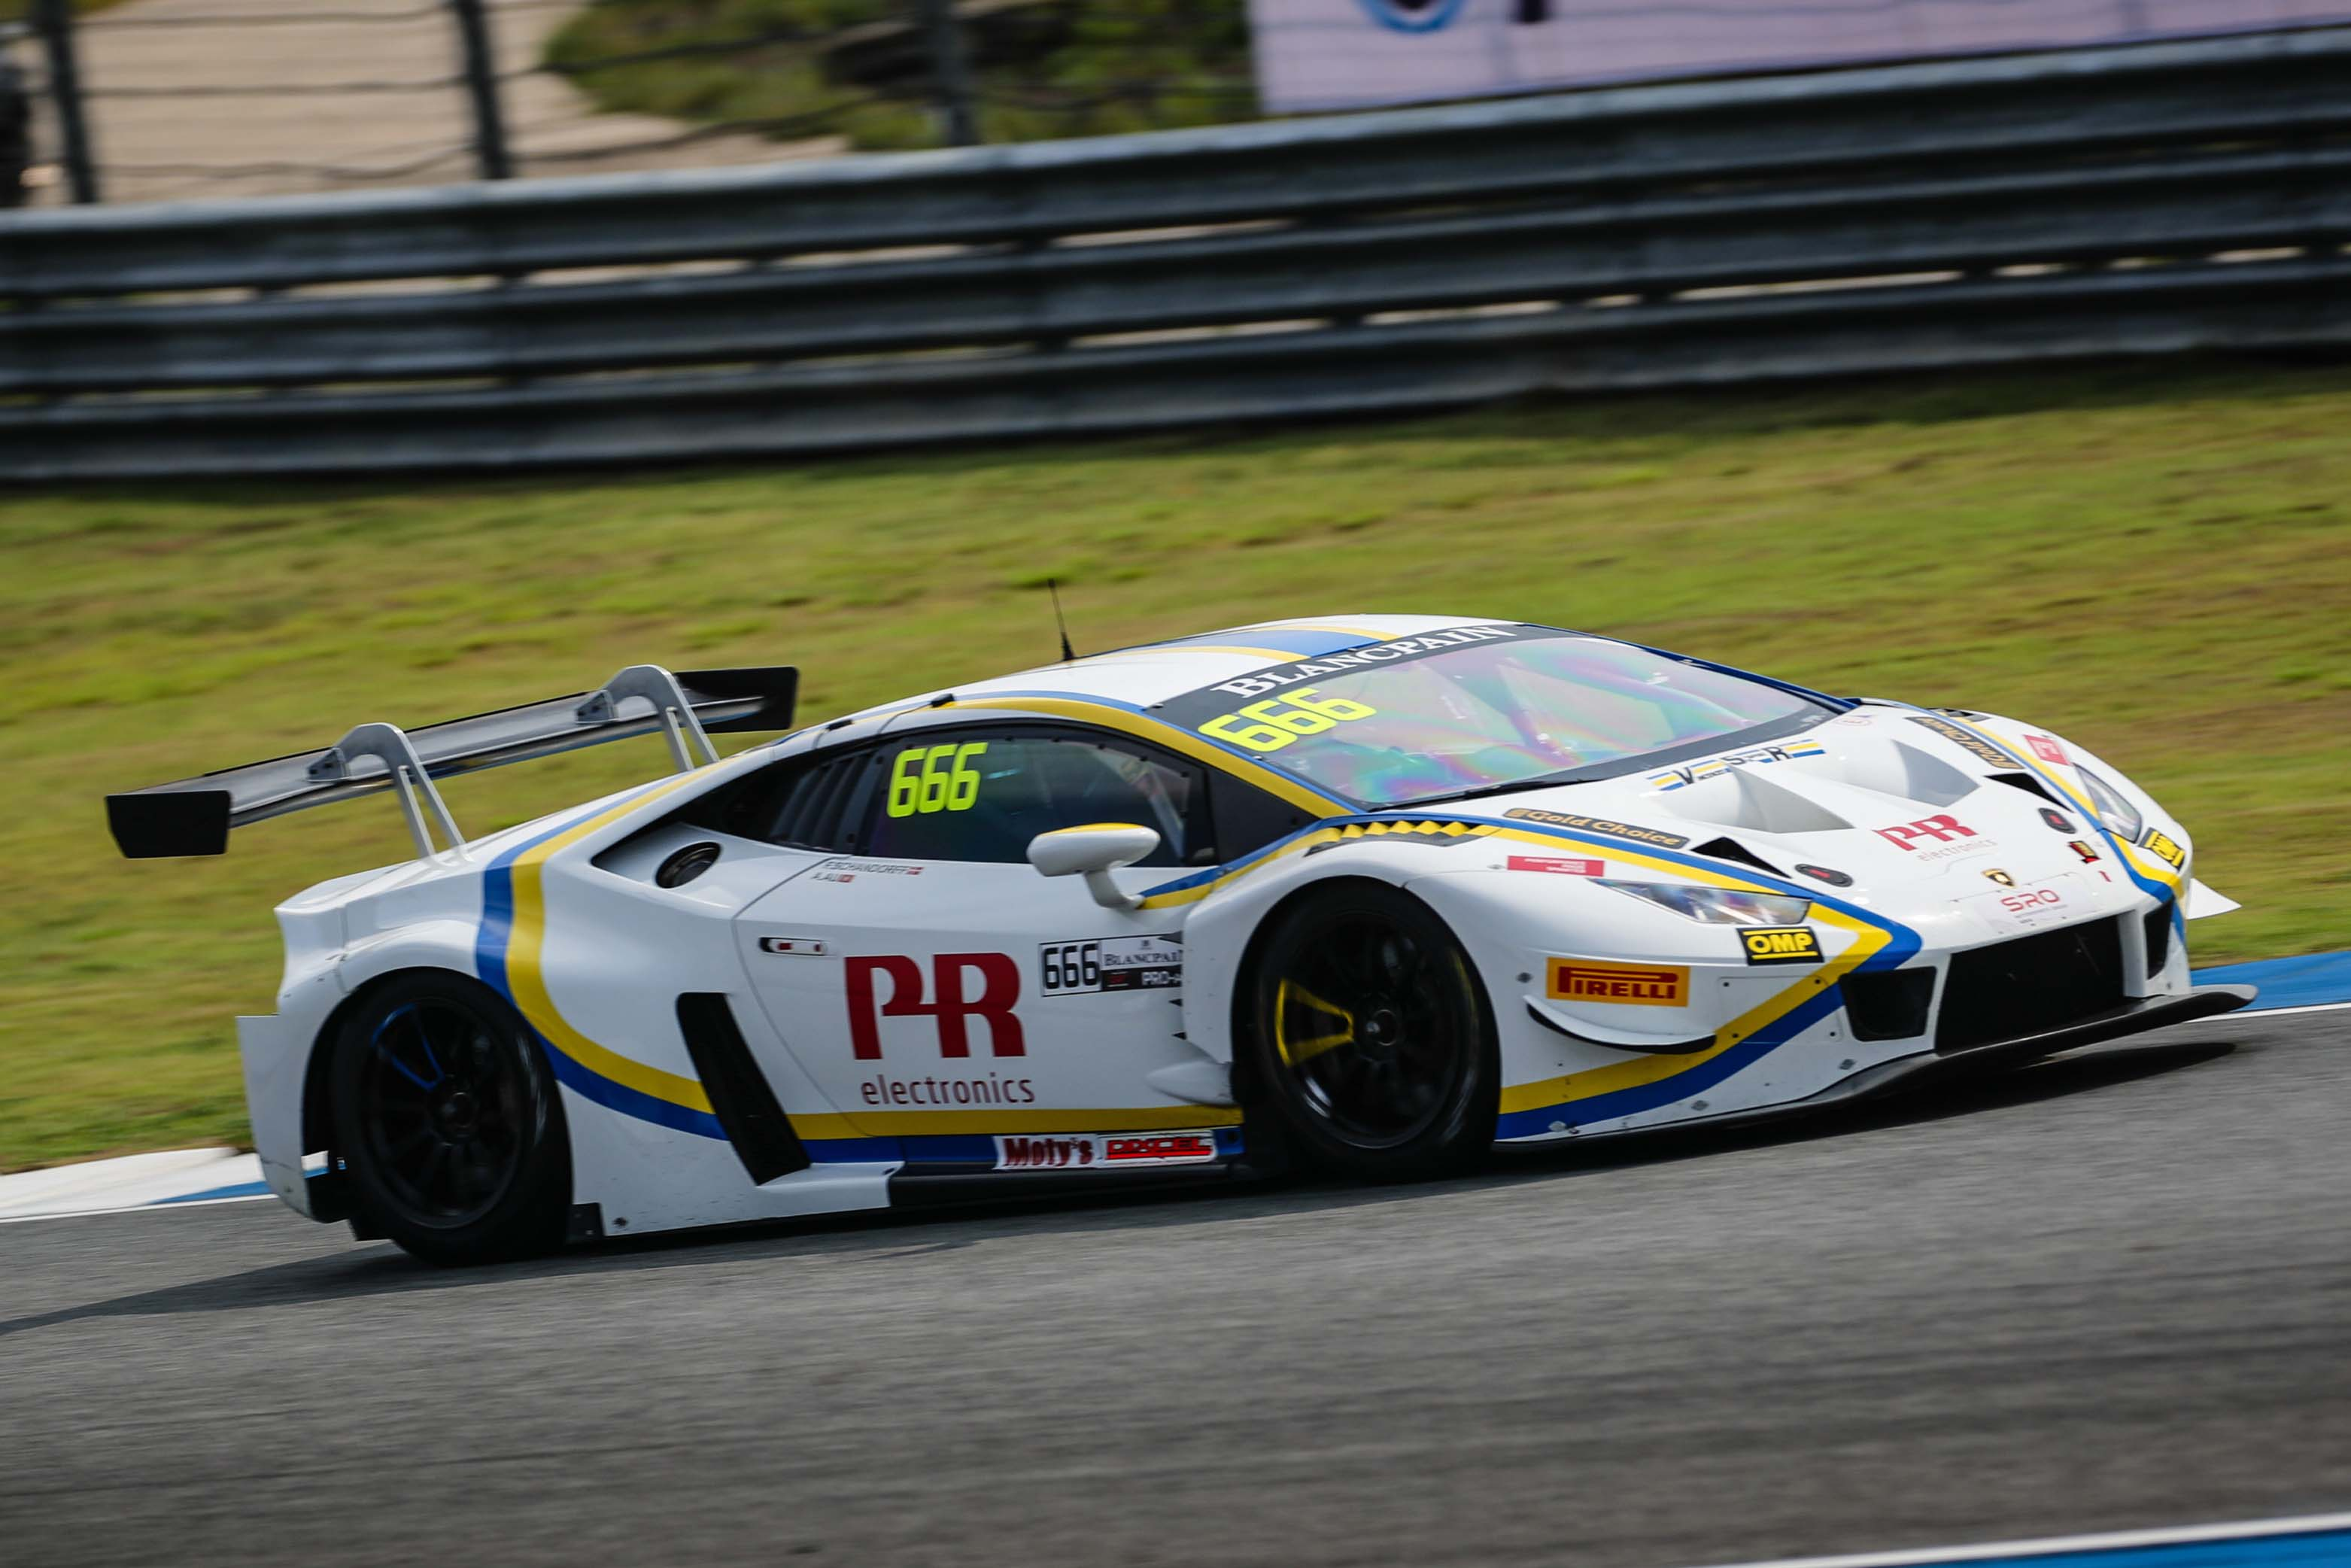 AU AND SCHANDORFF TAKE CHAMPIONSHIP LEAD AT BURIRAM